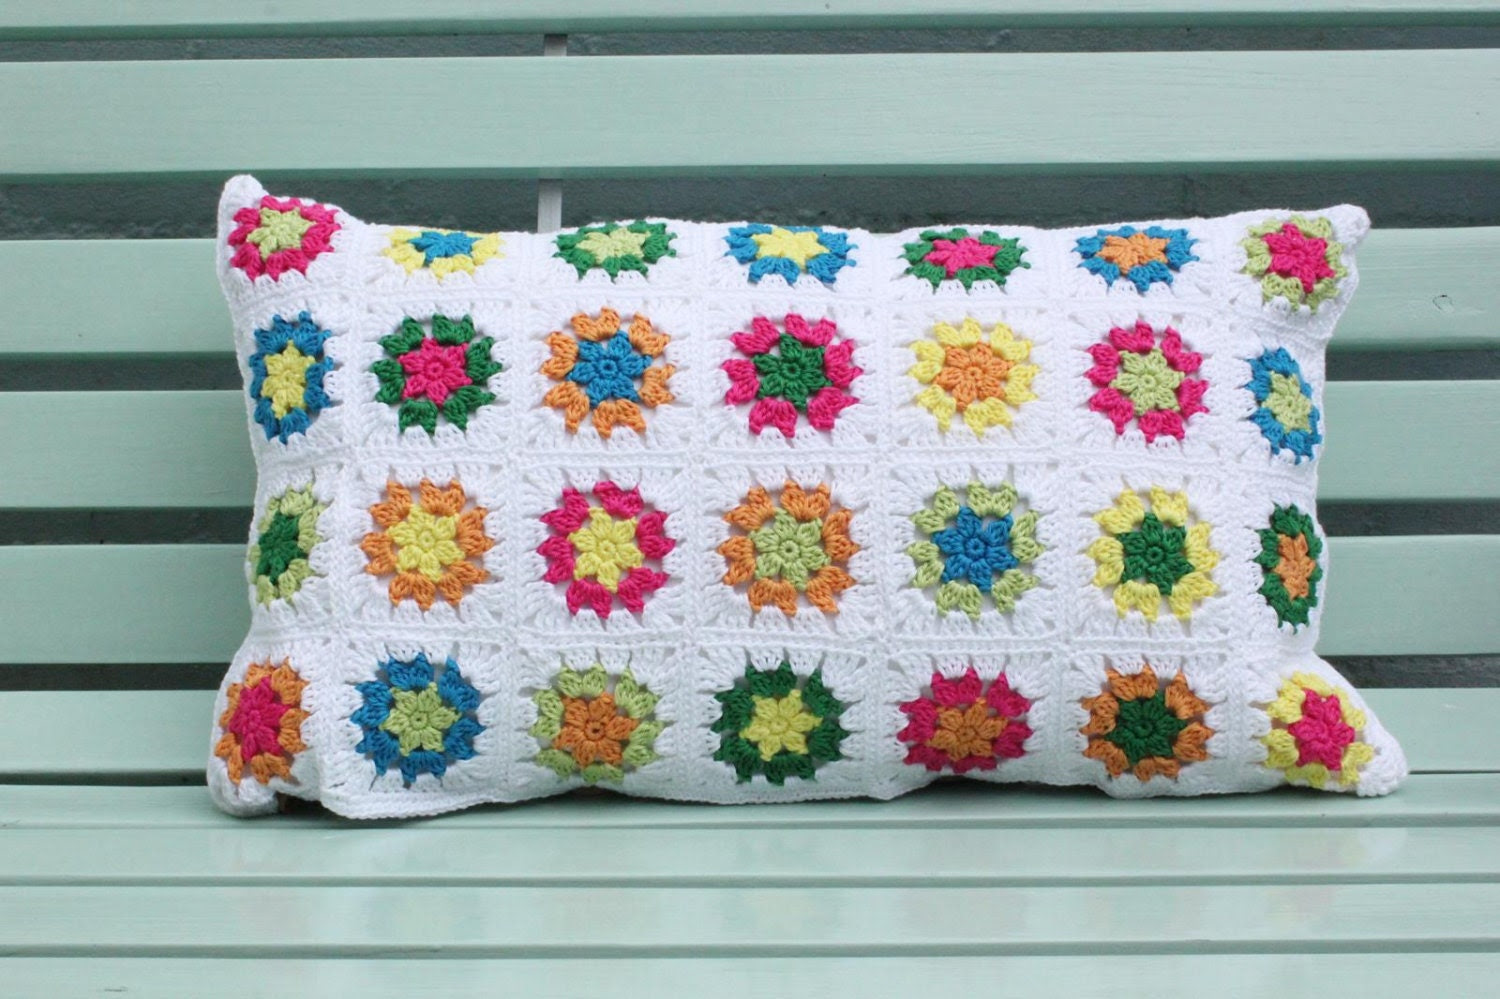 summery crochet granny square cushion cover - Anitareus